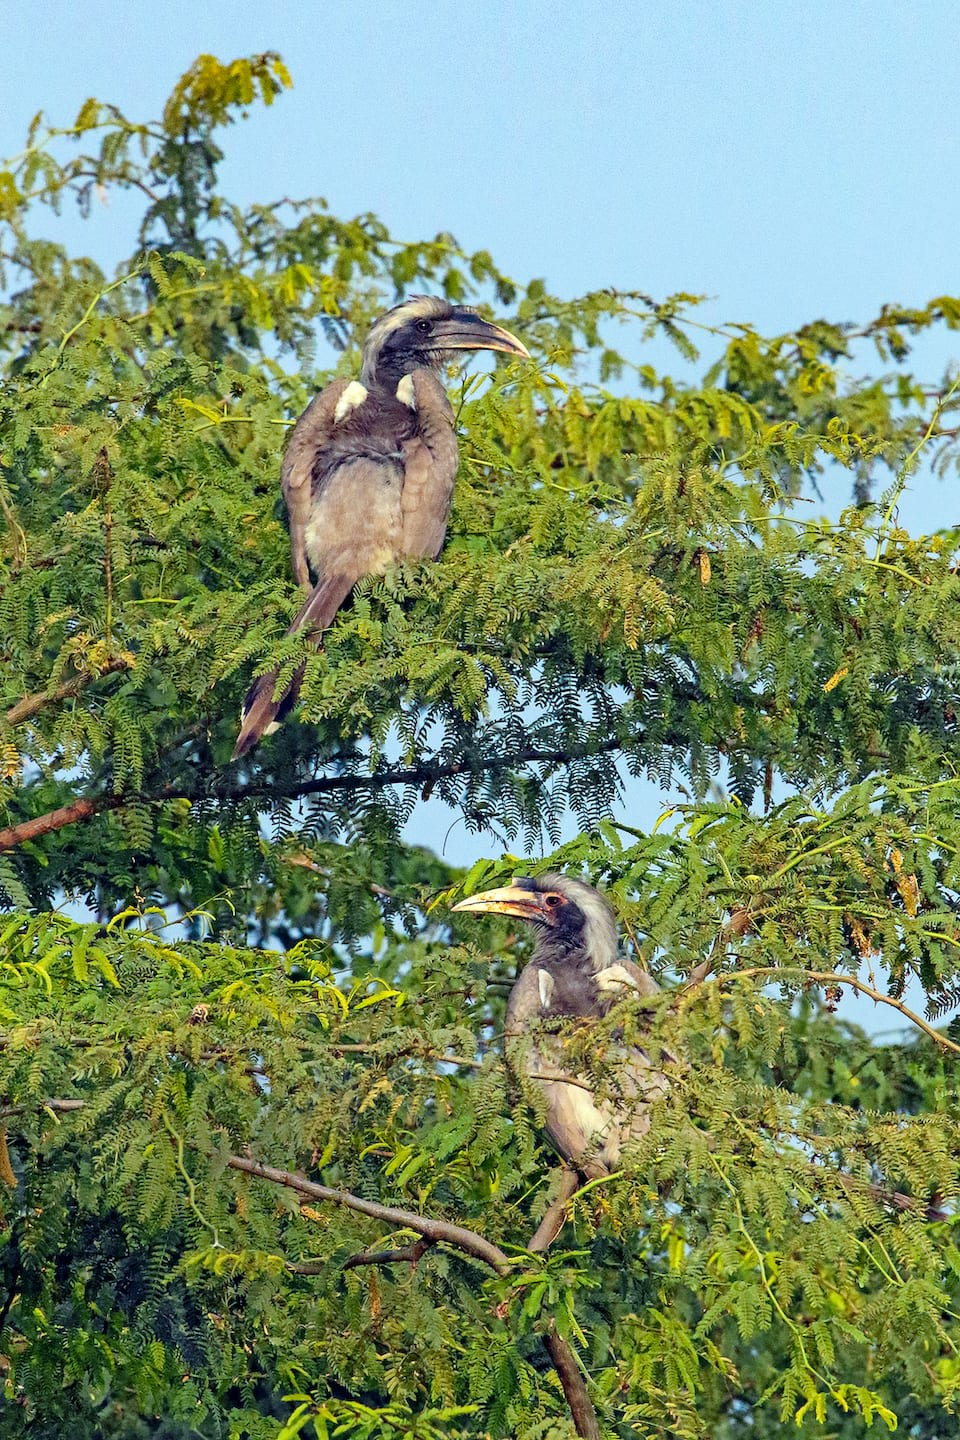 Indian grey hornbills form monogamous couples and are often spotted in pairs on fruiting trees.